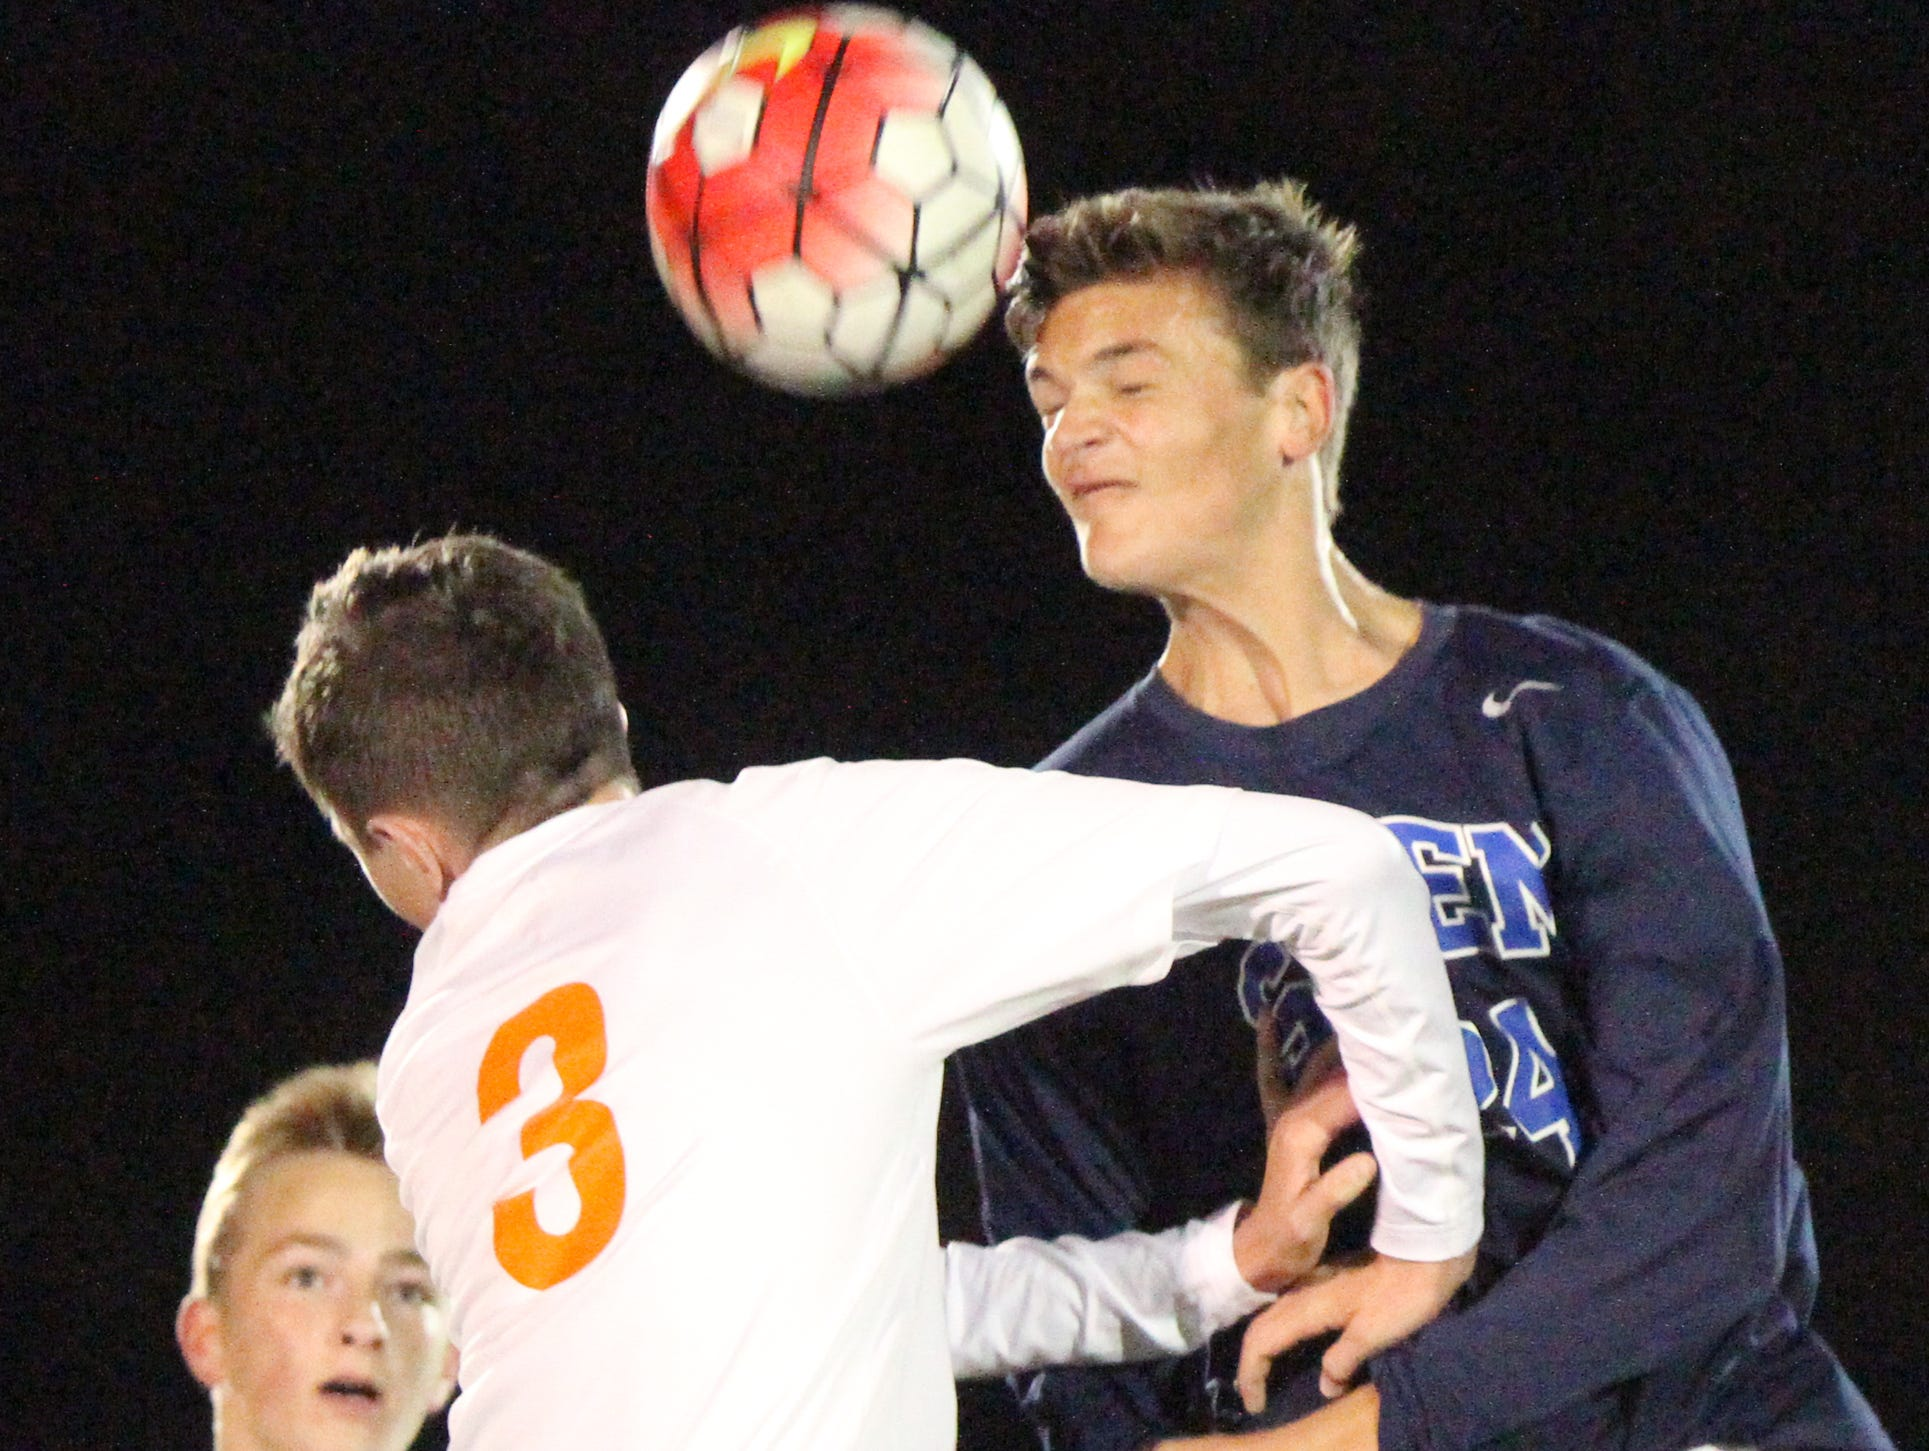 Brighton's Thomas Corrigan, left, and Christian Freitag of Salem jump for a header in a game the Bulldogs lost, 5-0, to Salem on Wednesday night.